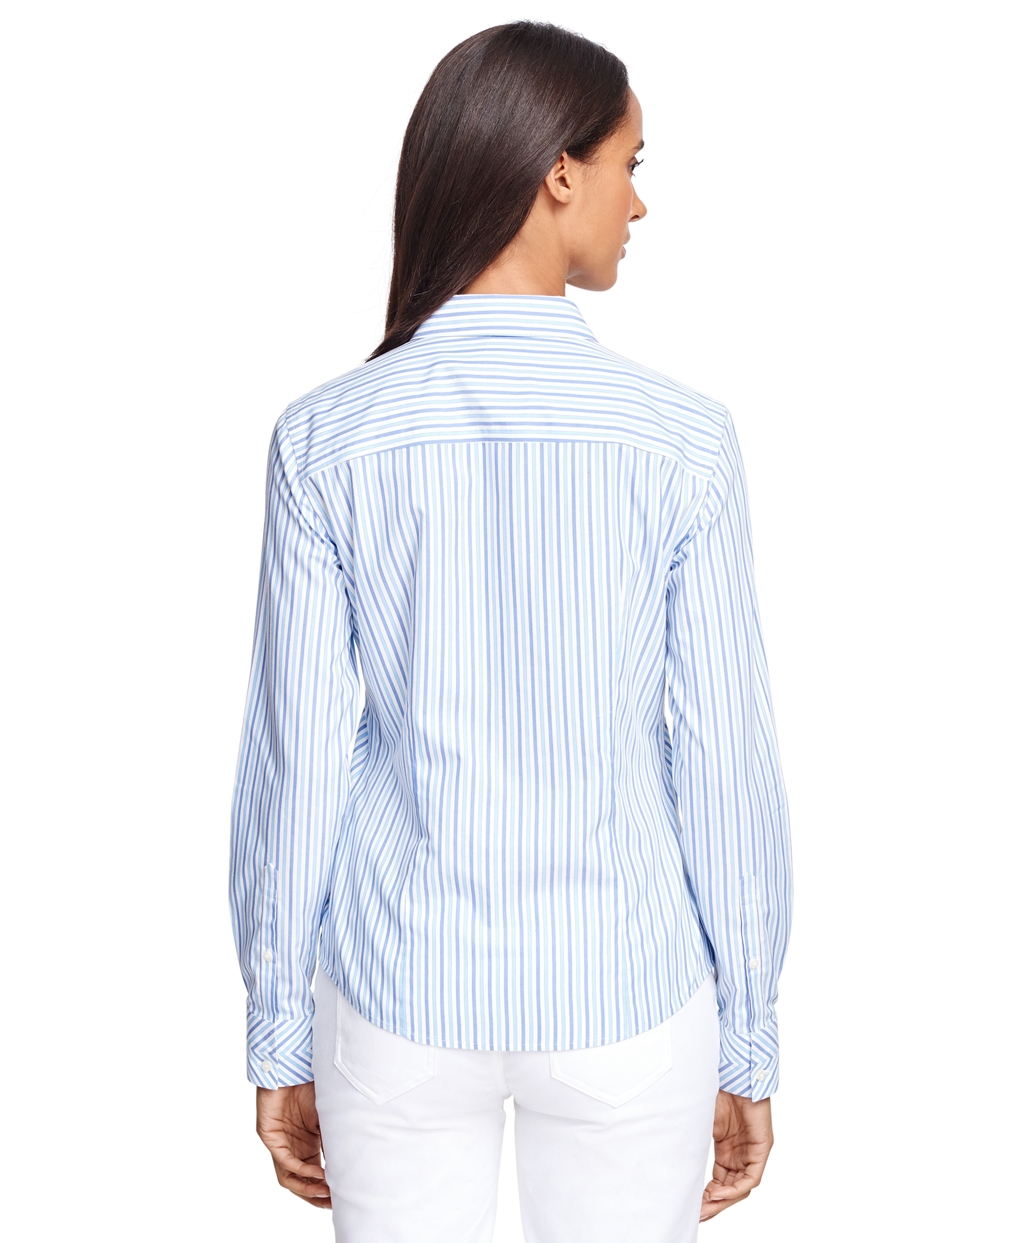 Brooks Brothers Petite Non Iron Fitted Supima Cotton